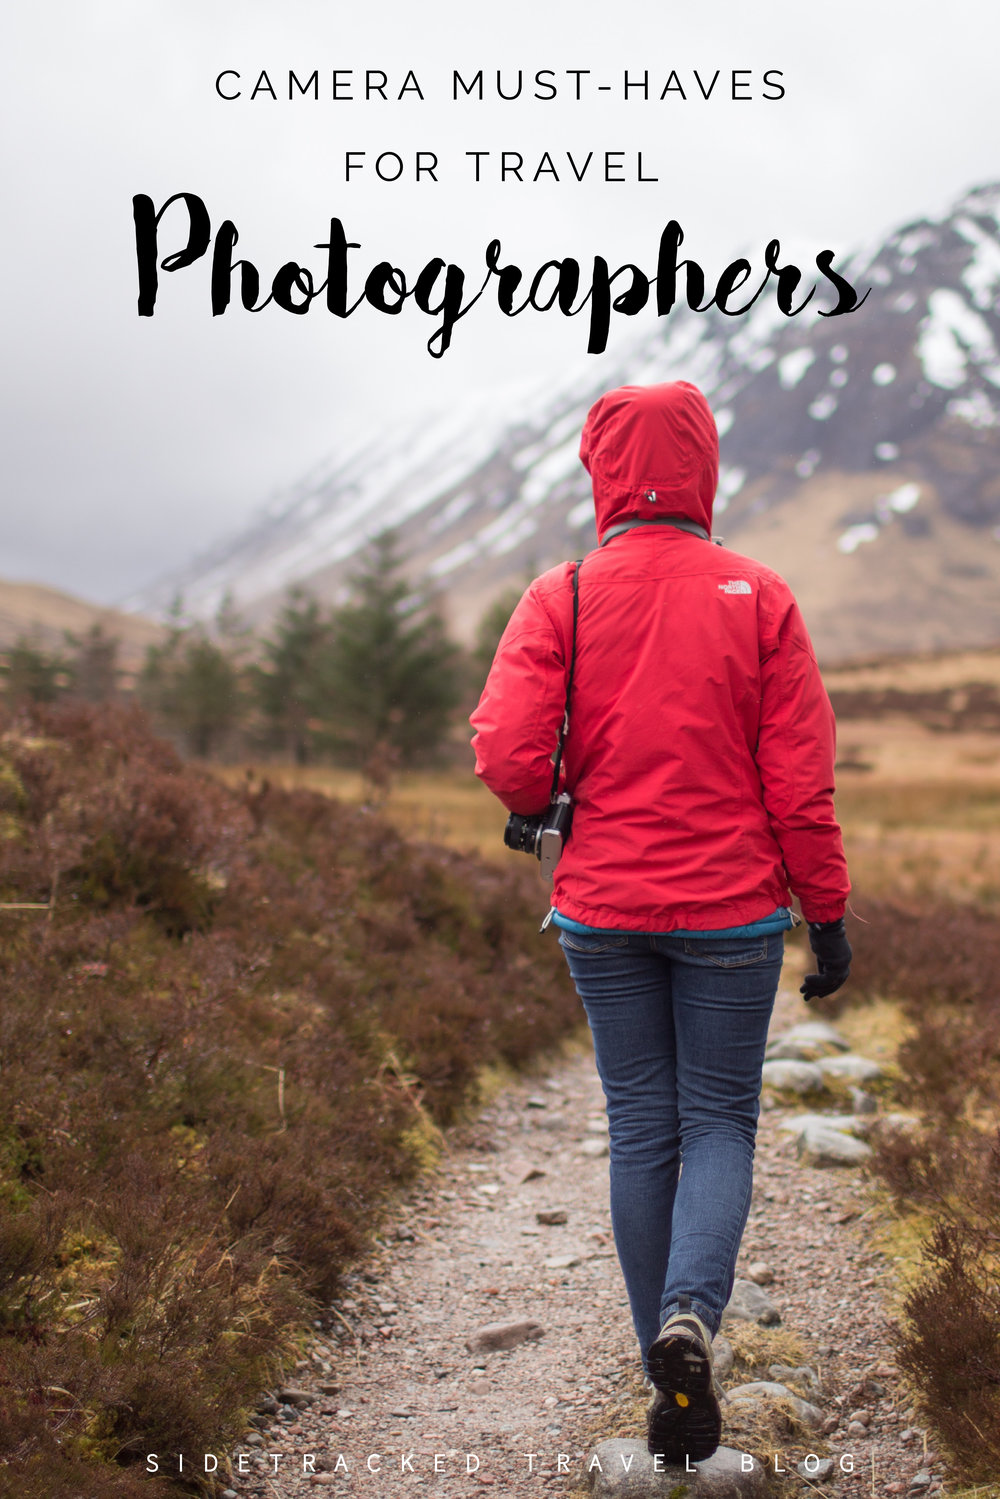 With so many camera options out on the market today, it can be a challenge to find the right photography travel gear. Here is my list of camera bag must-haves for travel photographers.